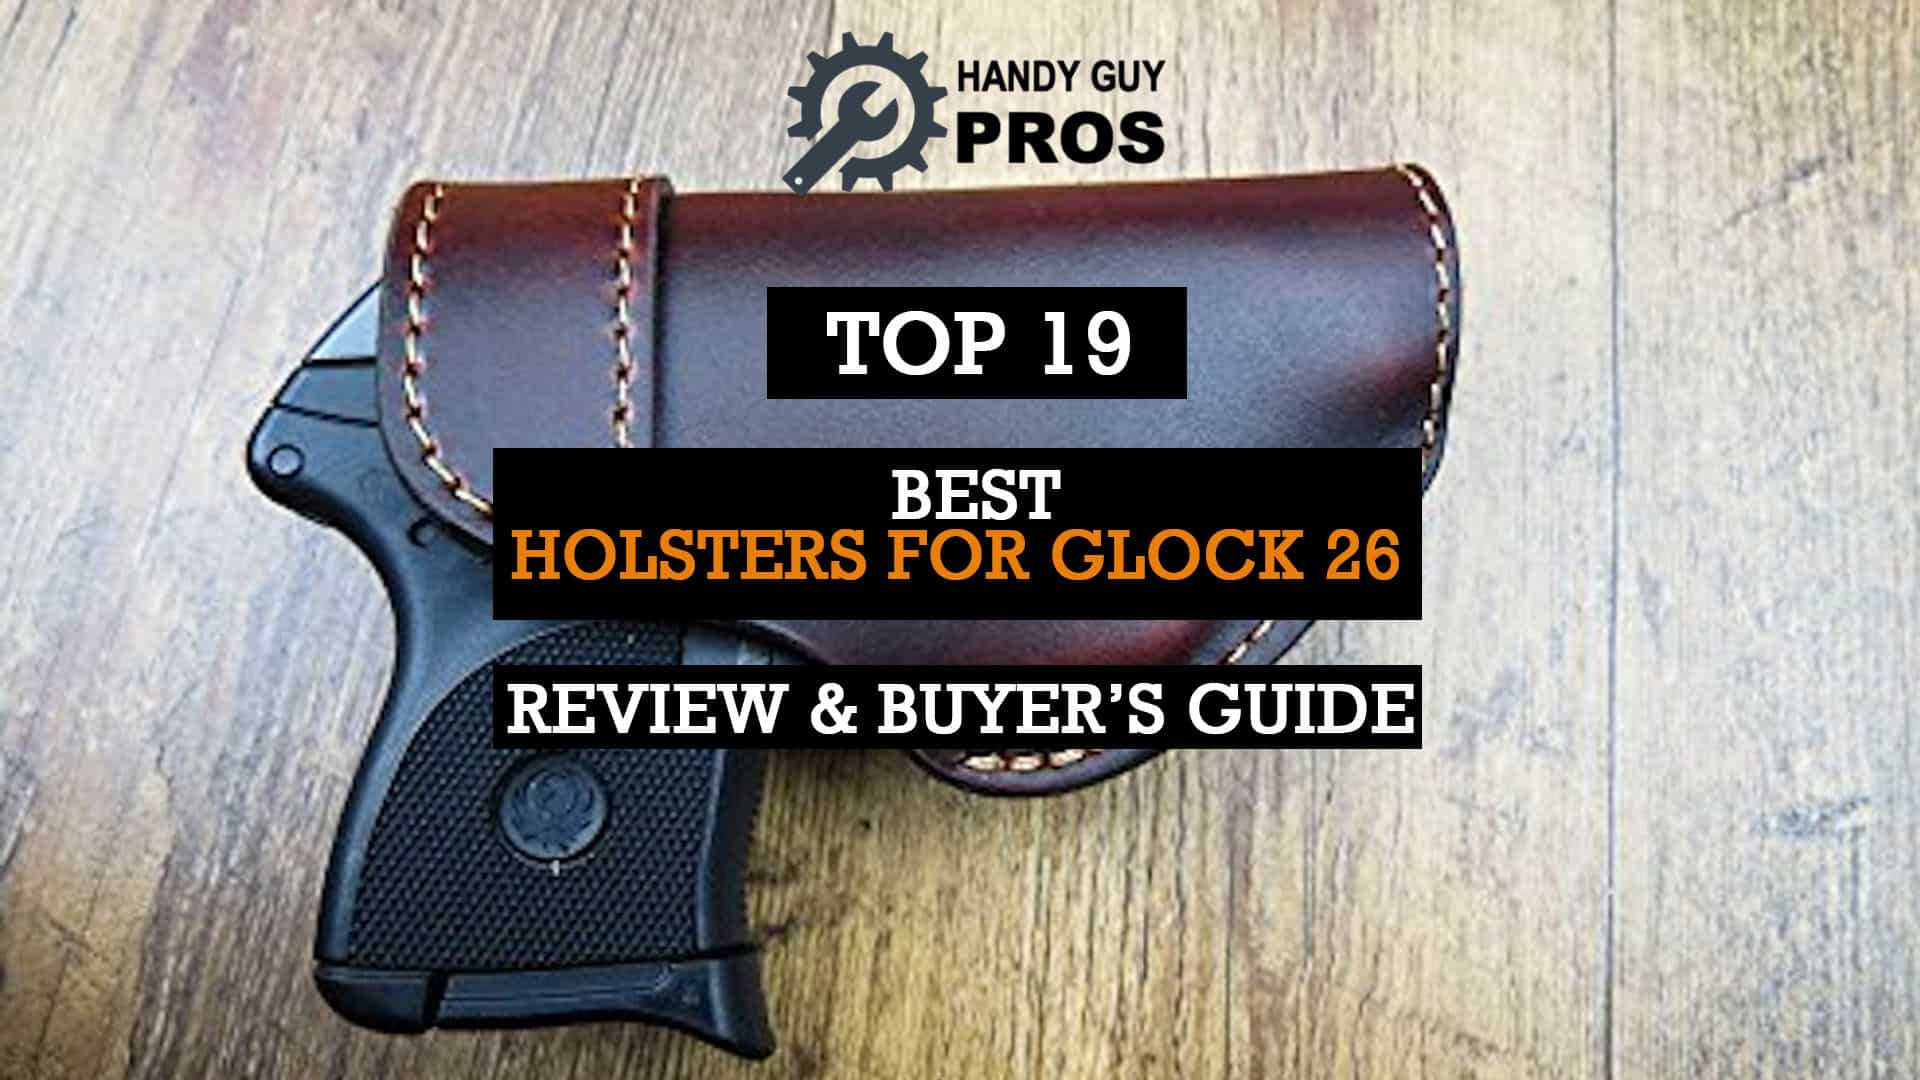 Best Holsters for Glock 26